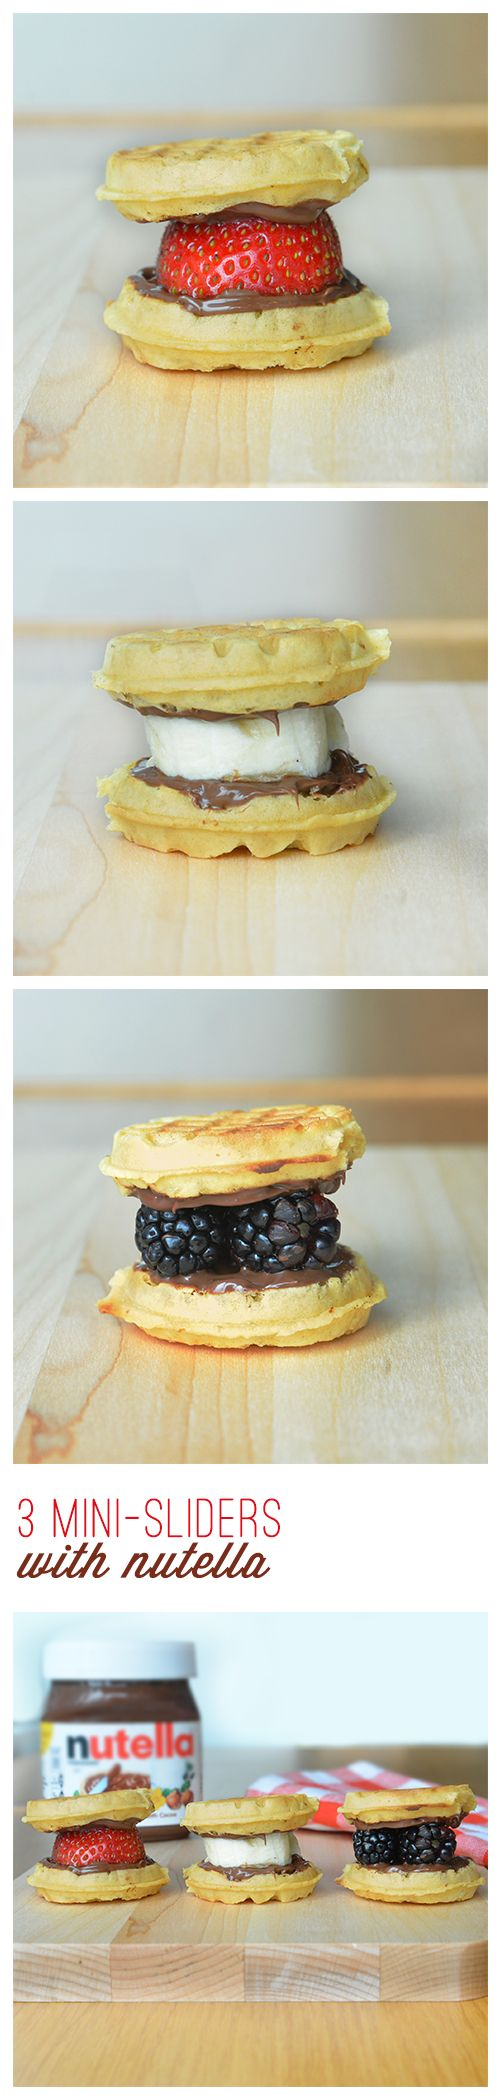 Need even easier ways to feed your family on hectic school days? Help your kids build-their-own breakfast or snack and choose-their-own bliss by creating these mini-sliders with Nutella®. All you need are some mini waffles, your choice of fruit and a spread of Nutella®. It's easy, fun and might just make you the coolest mom on the block.